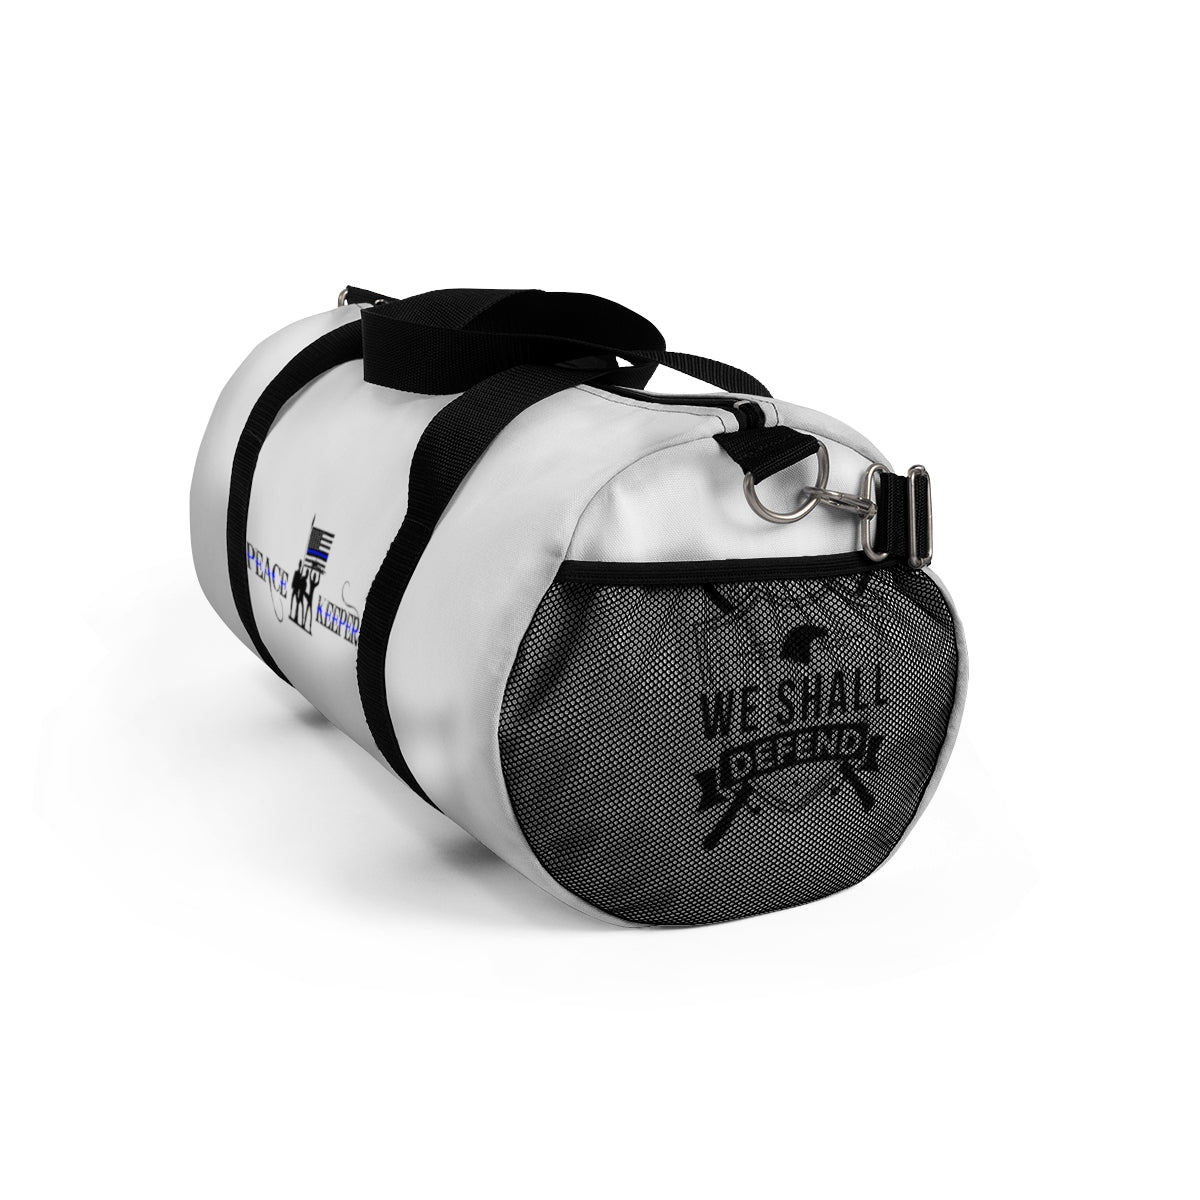 The Peacekeepers' Duffle Bag